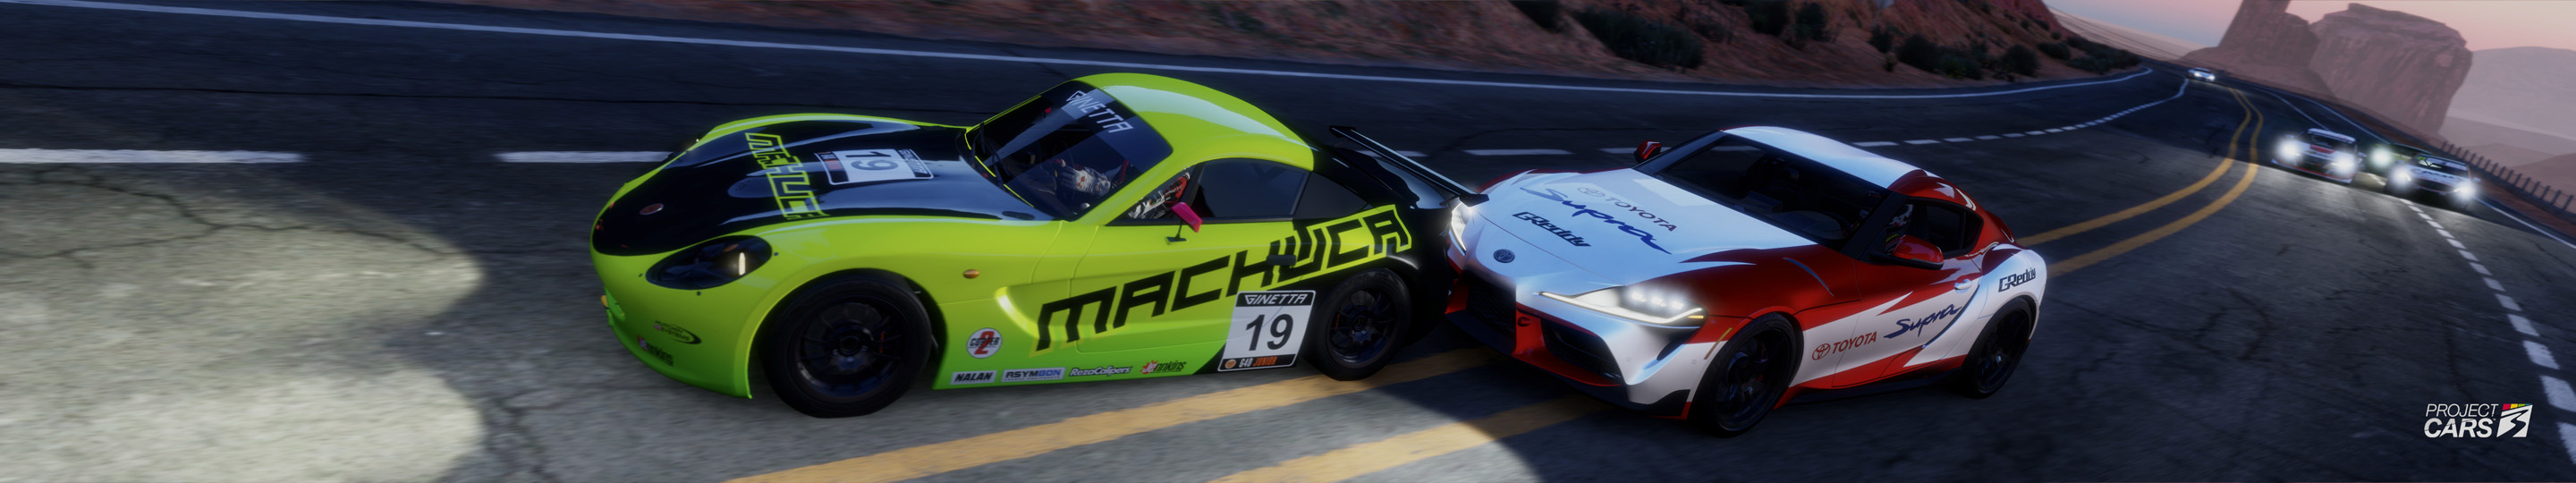 5 PROJECT CARS 3 MONUMENT CANYON with PIR RANGE CARS copy.jpg